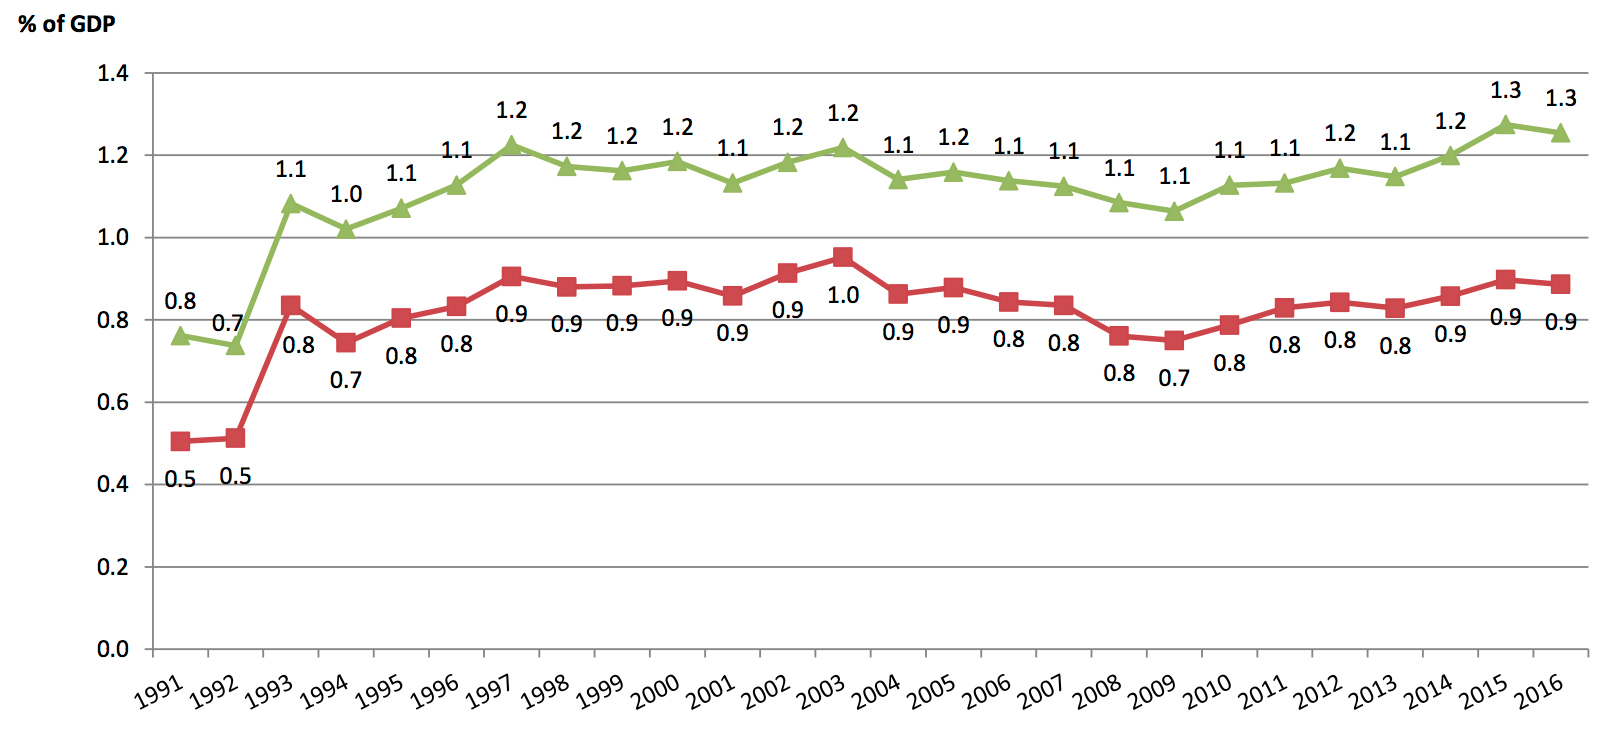 Figure 4. LGU own-source revenues (green) and local taxes (red) as a share of GDP, 1991-2016. Source: Manasan [2017].